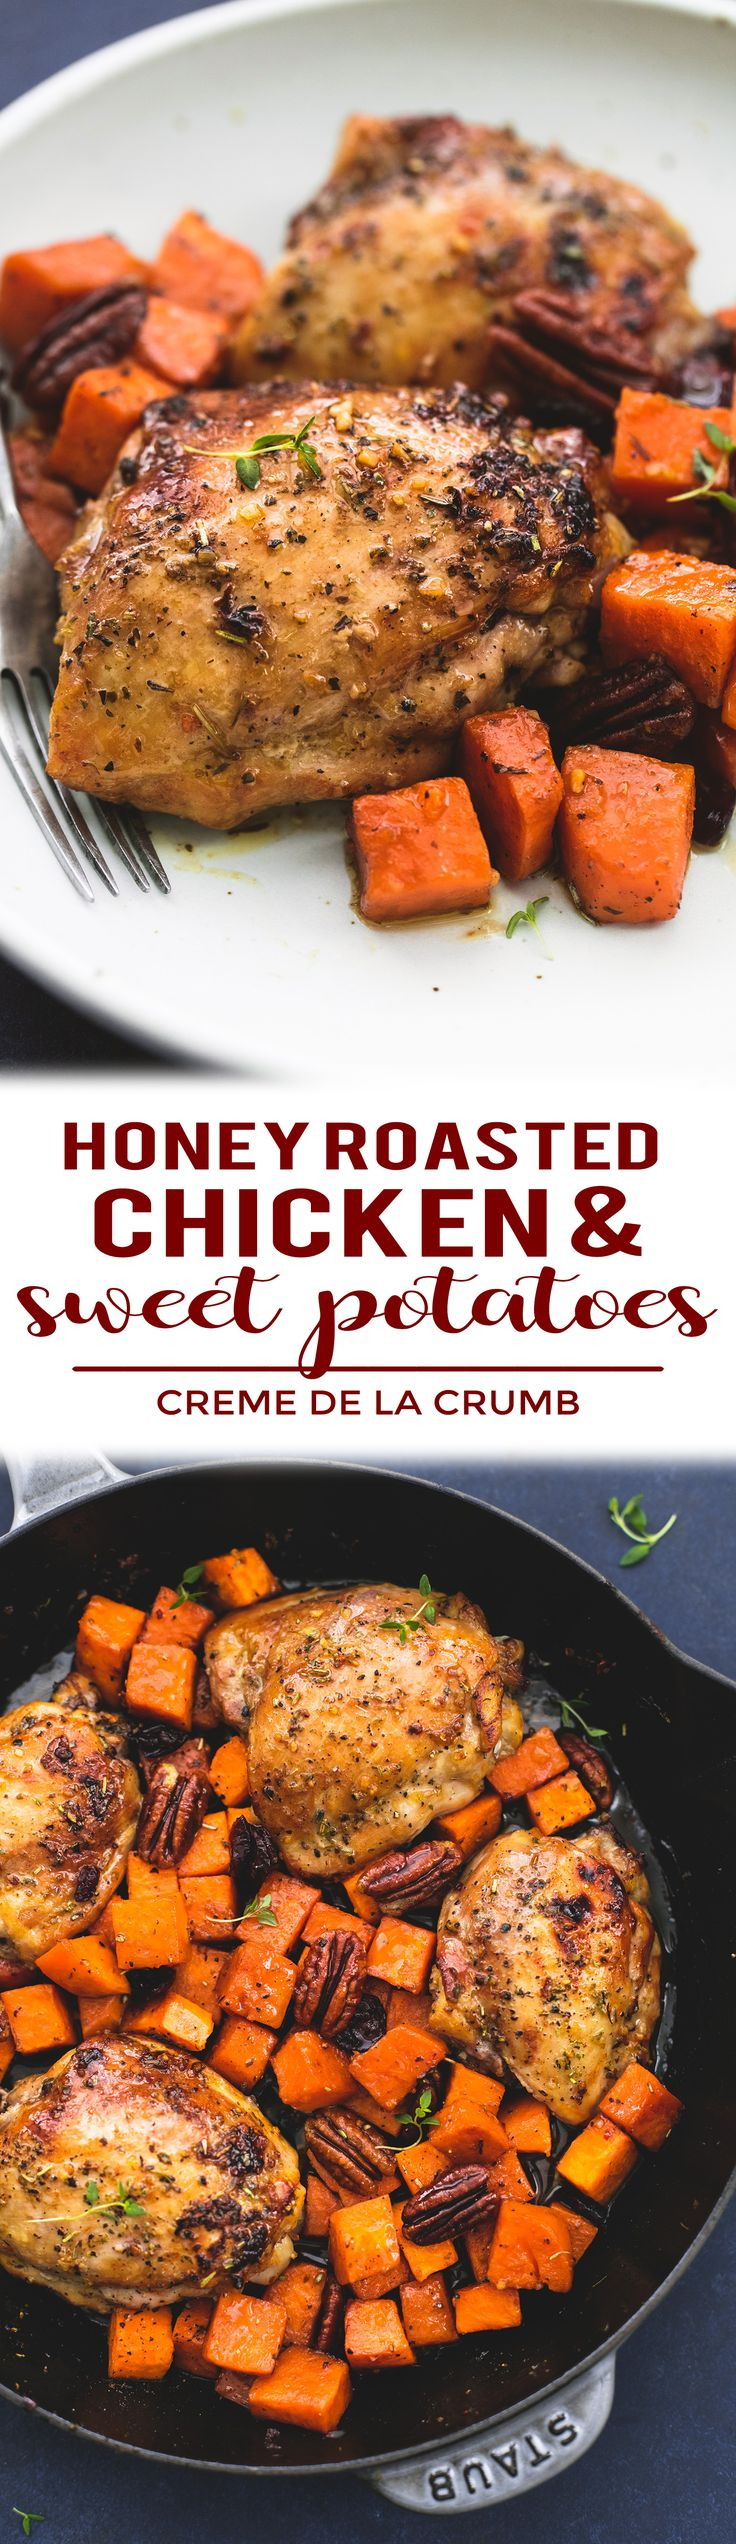 This easy and simple honey roasted chicken and sweet potatoes skillet is everything you want in a hearty, comforting Fall meal. This tasty one pan meal will be ready in about 30 minutes and you will love the flavors! | lecremedelacrumb.com